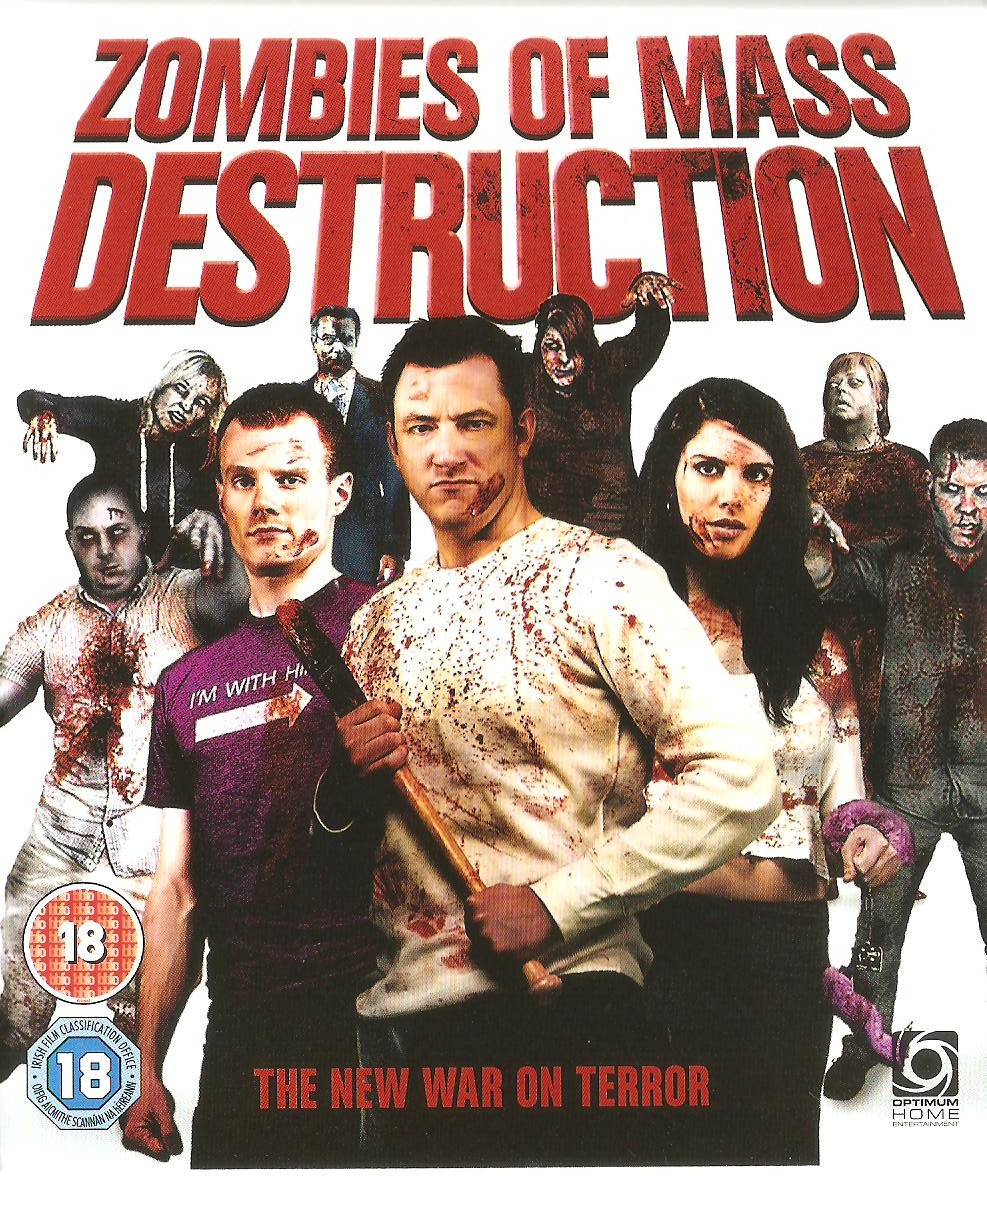 http://pete975.files.wordpress.com/2013/04/zombies-of-mass-destruction-bluray-001.jpg